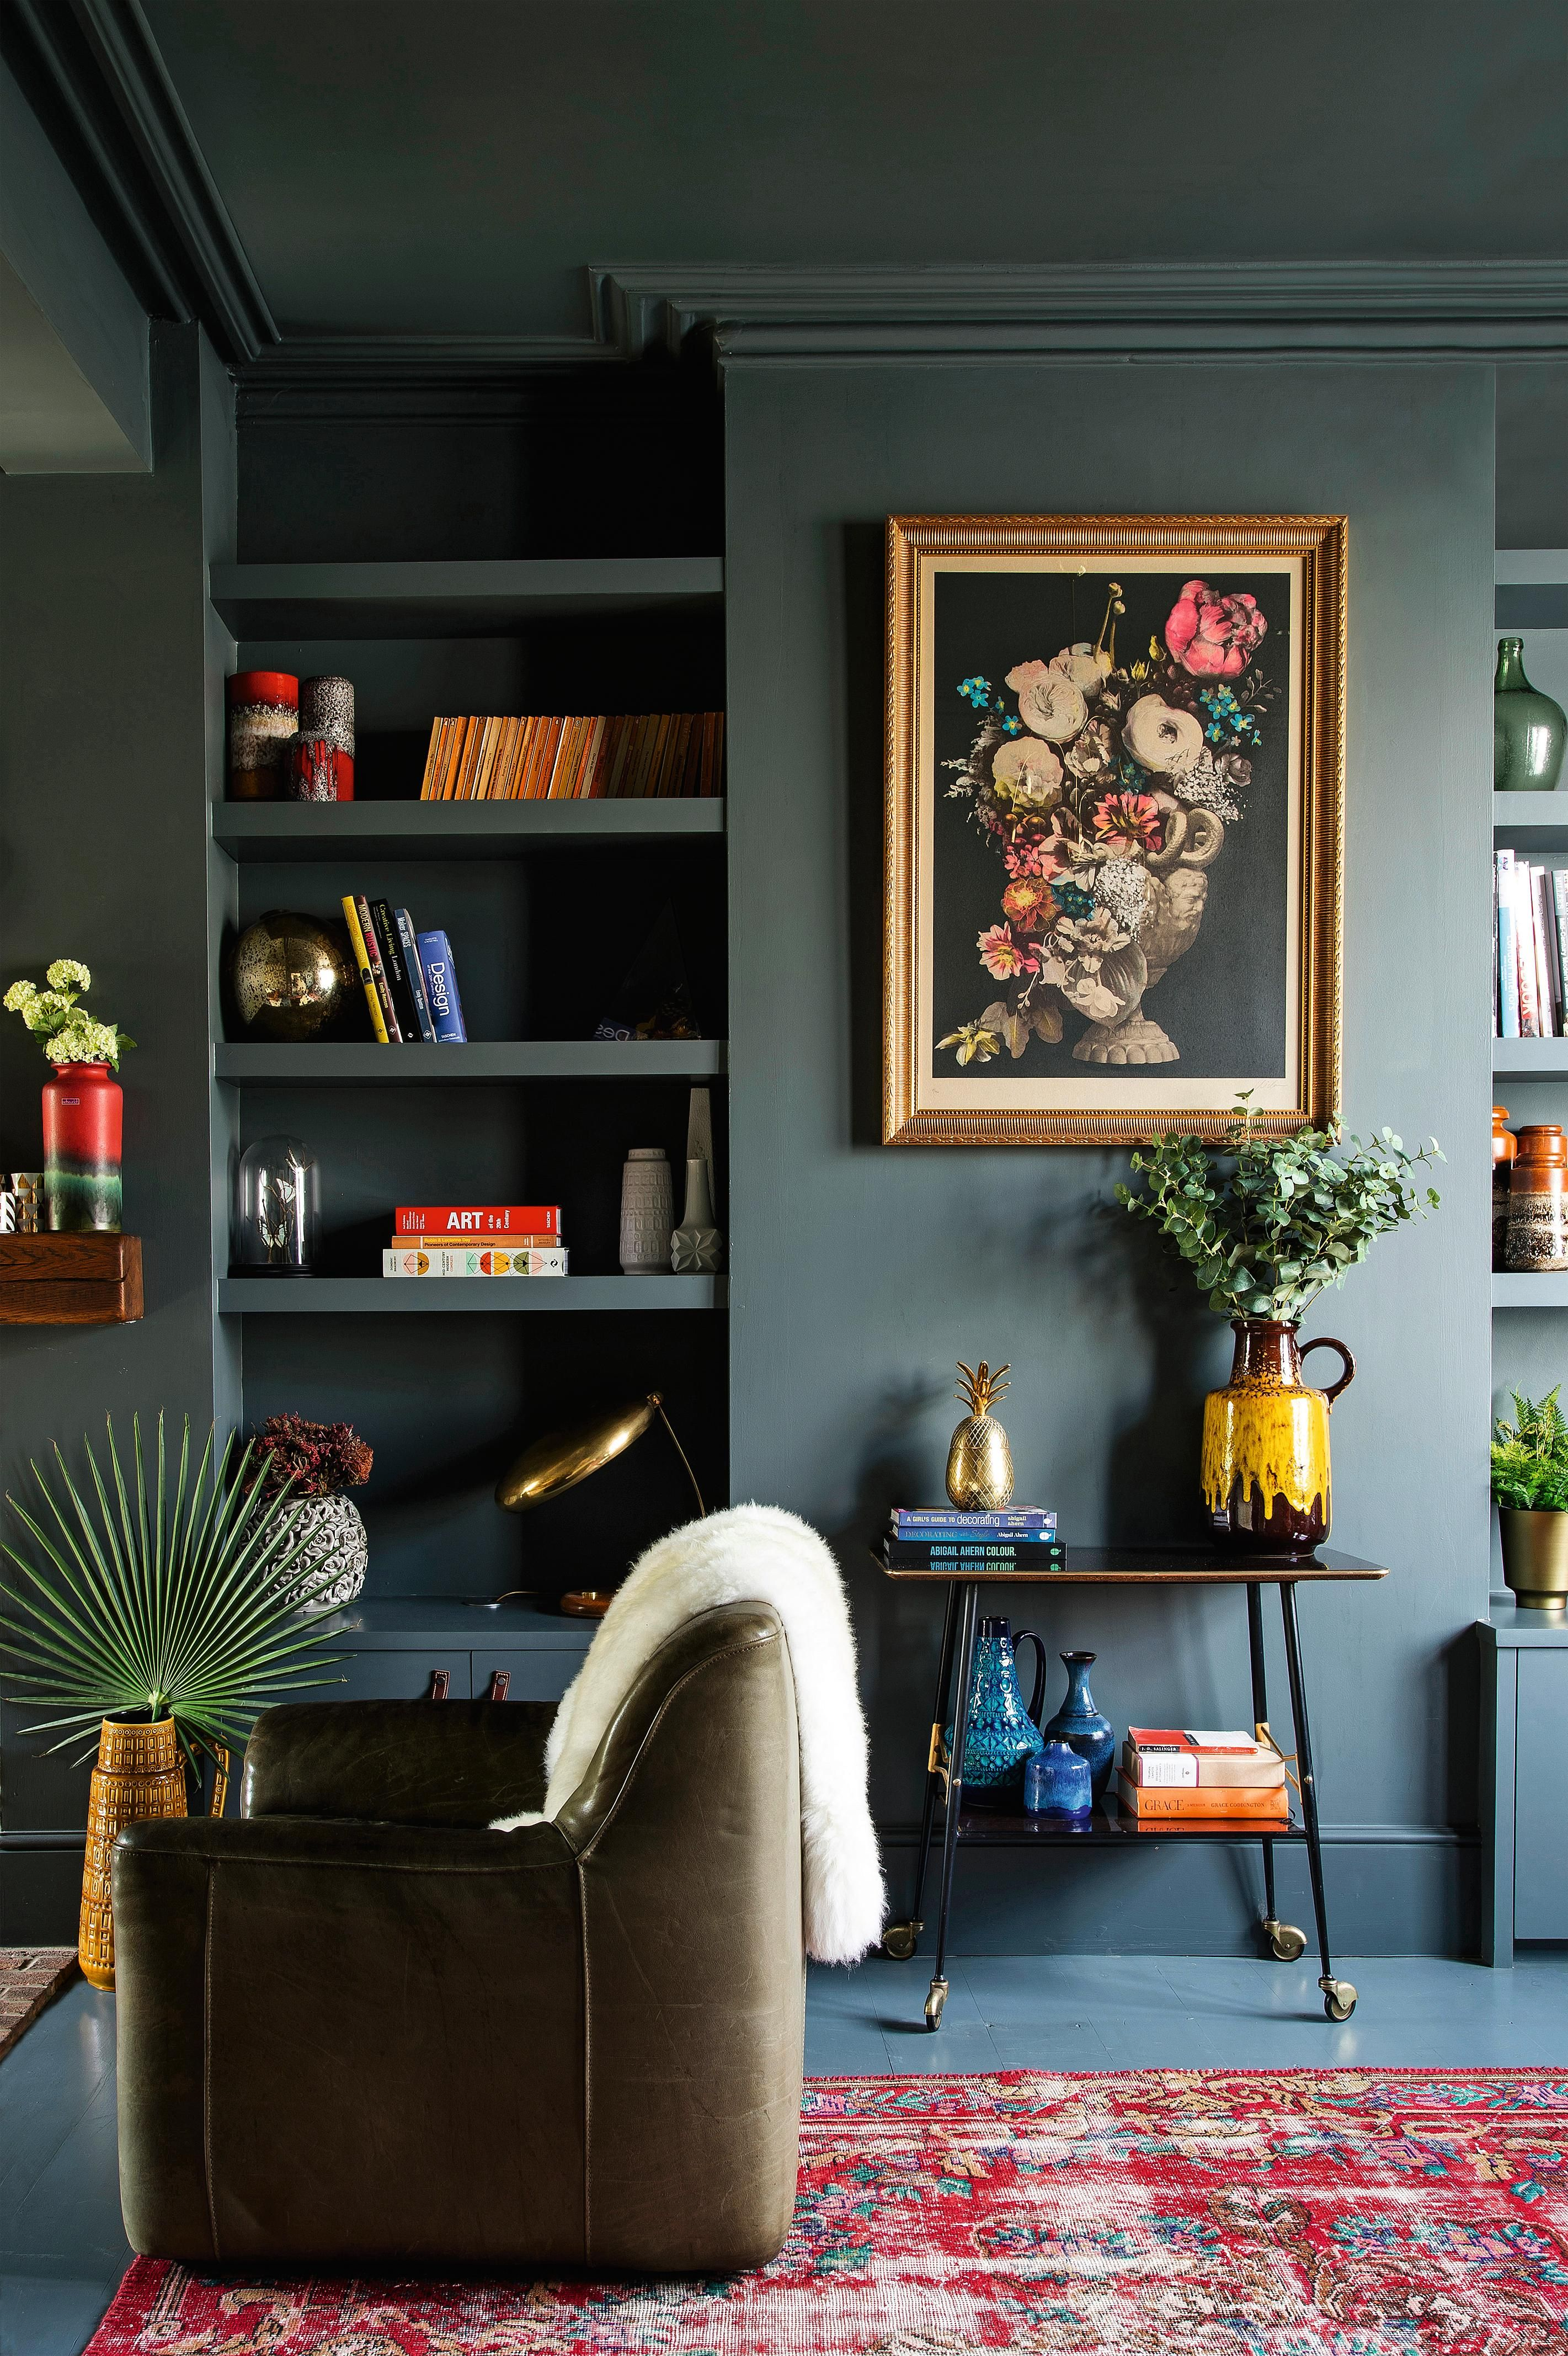 Paint The Woodwork Same Colour As Walls For A Sophisticated Look Add Mix Of Quirky And Eclectic Accessories You Re